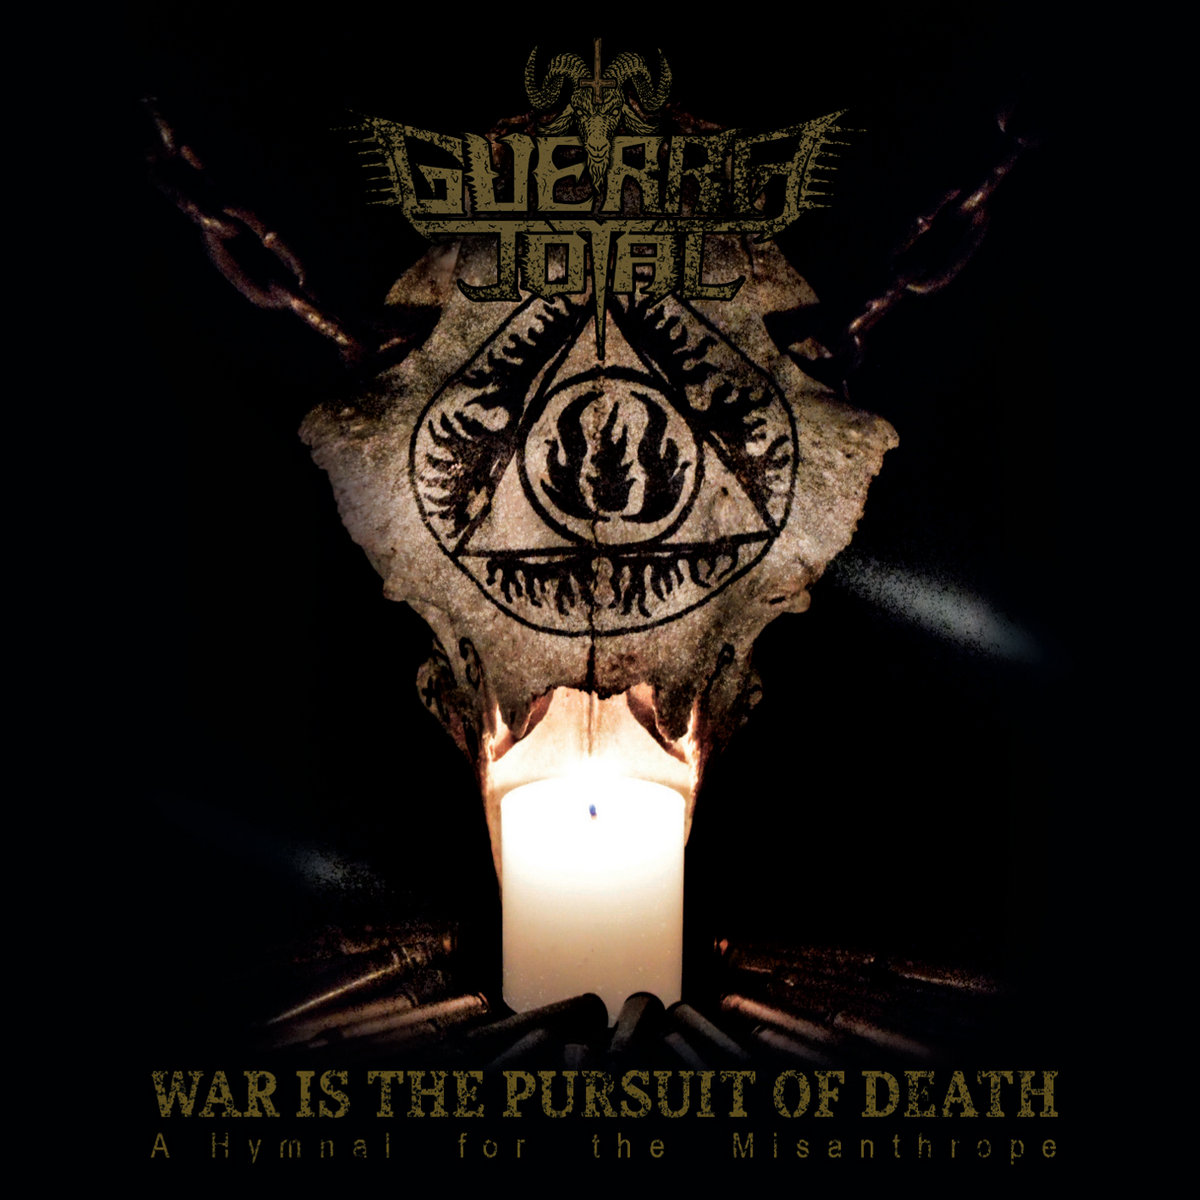 Guerra Total - War Is The Pursuit Of Death- A Hymnal For The Misanthrope Cover Art